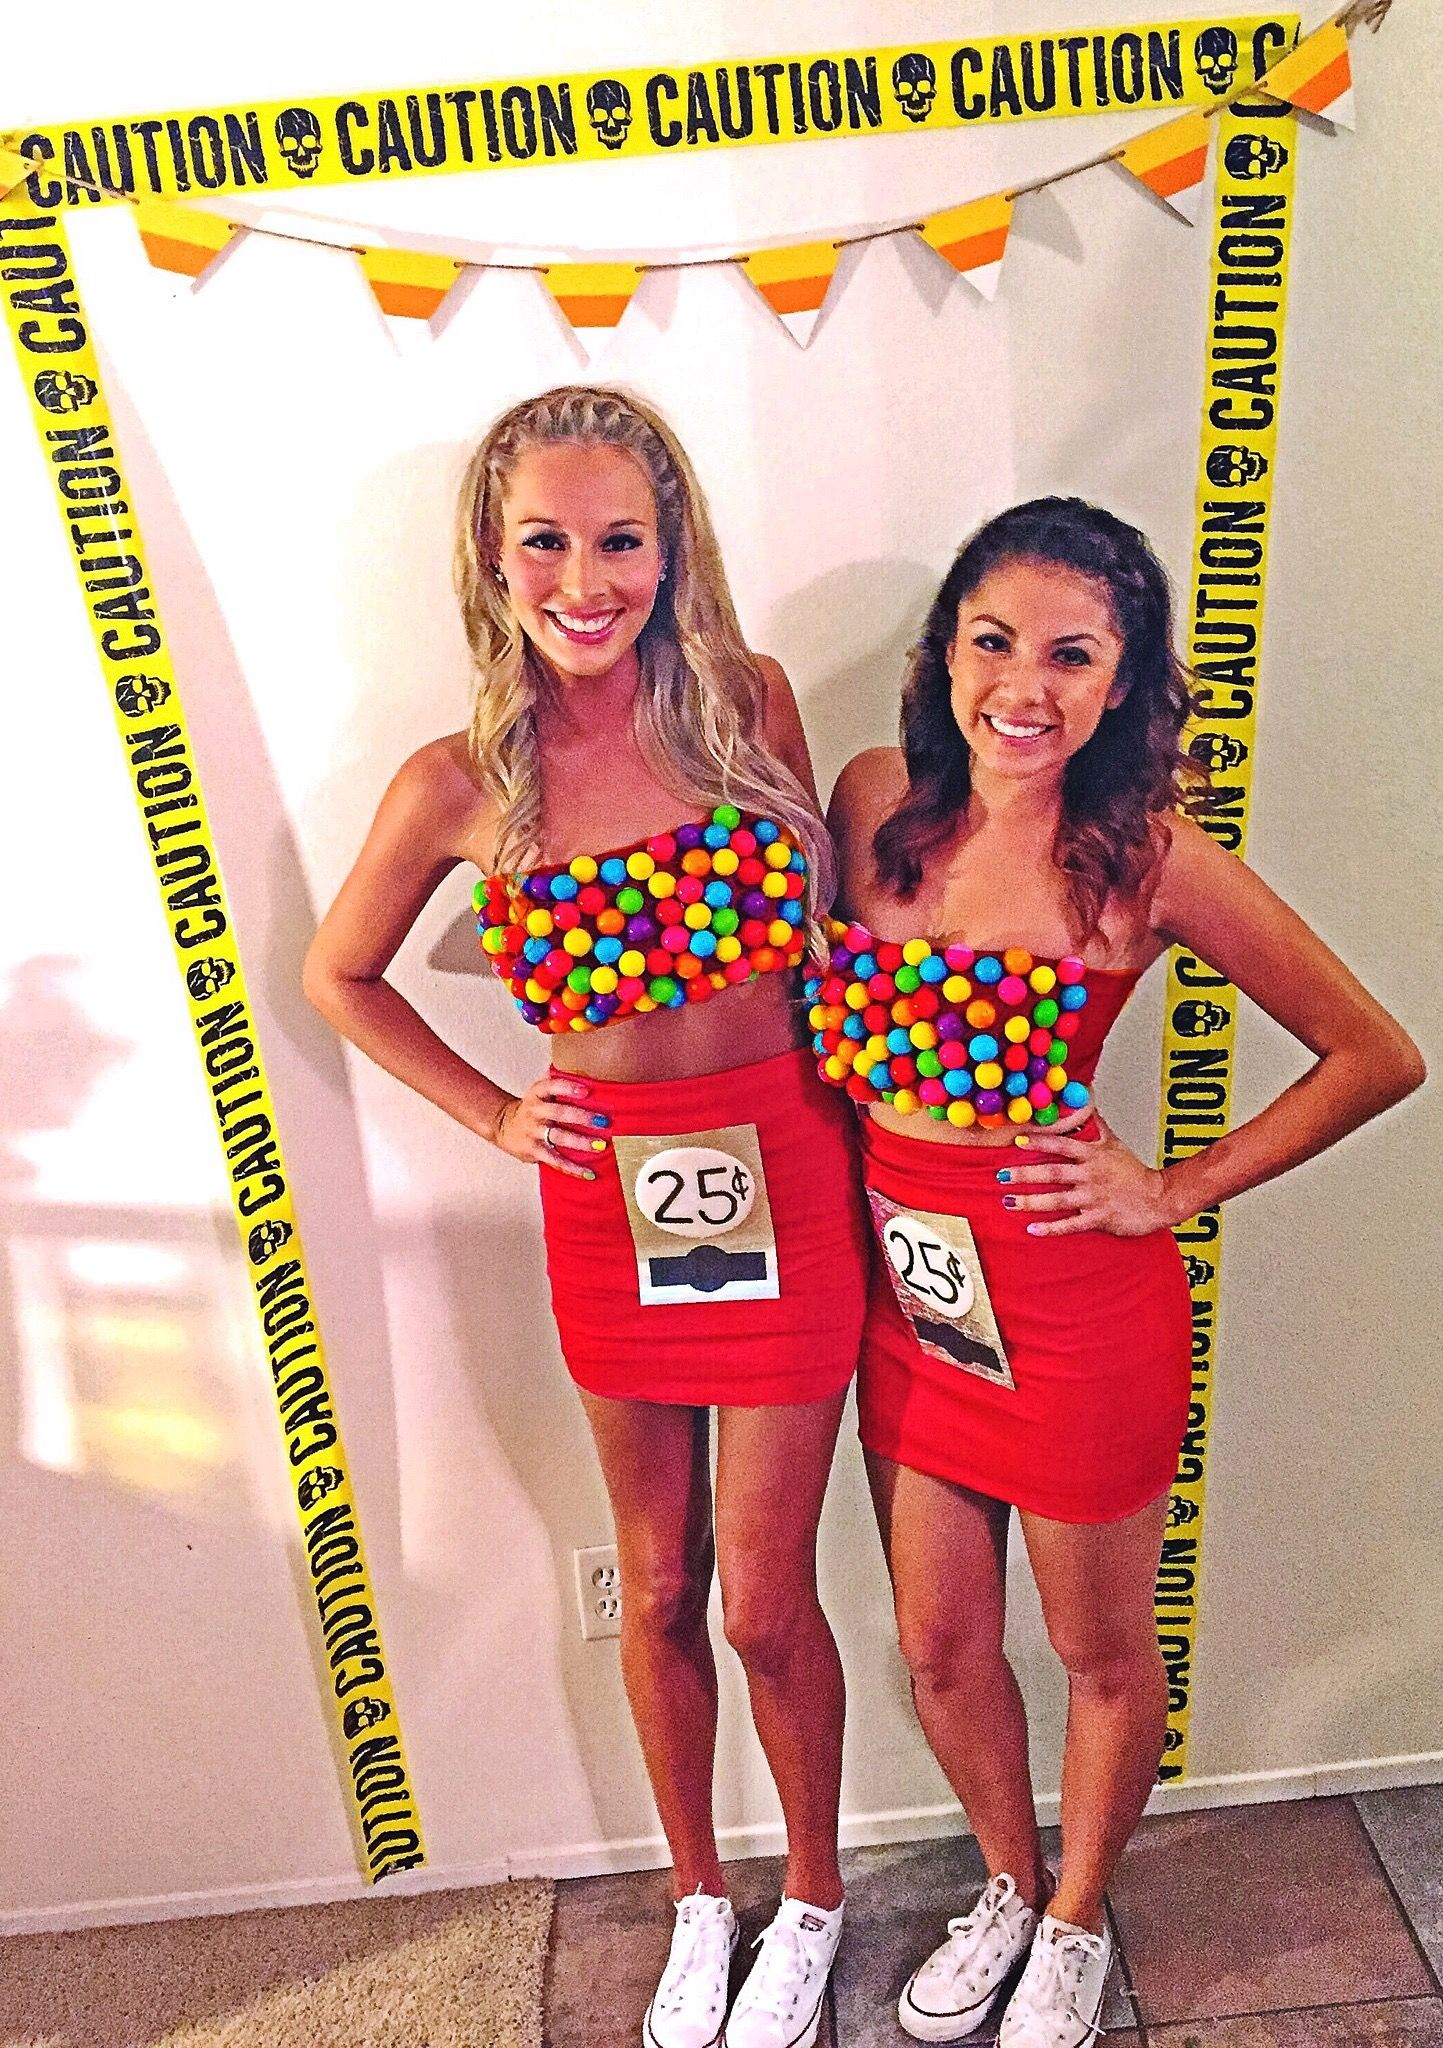 the gumball twins my diy costumes pinterest halloween costume halloween et id e costume. Black Bedroom Furniture Sets. Home Design Ideas